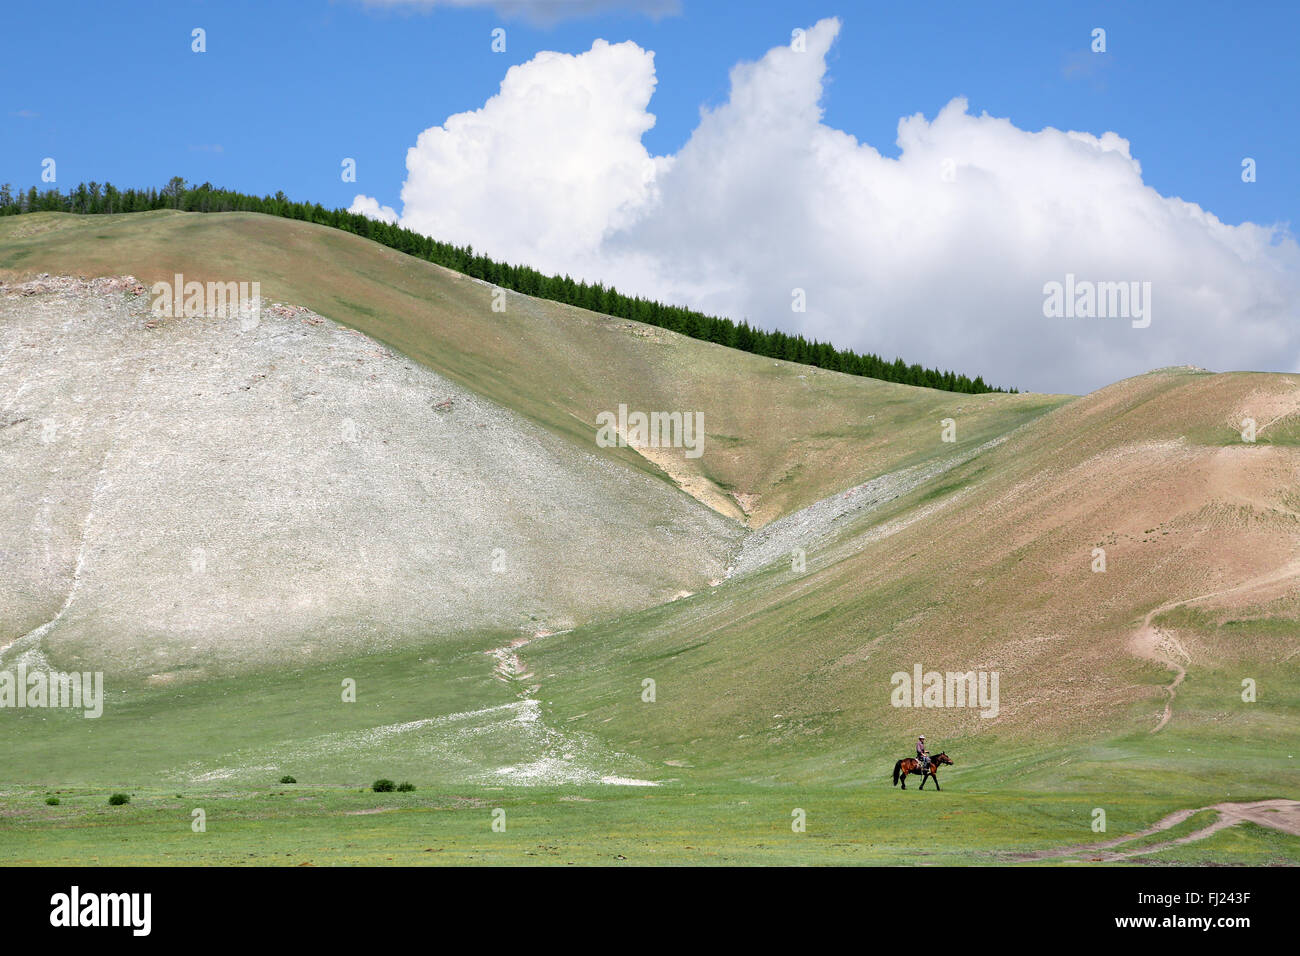 Mongolia stunning landscapes made of total green and emptiness - Stock Image